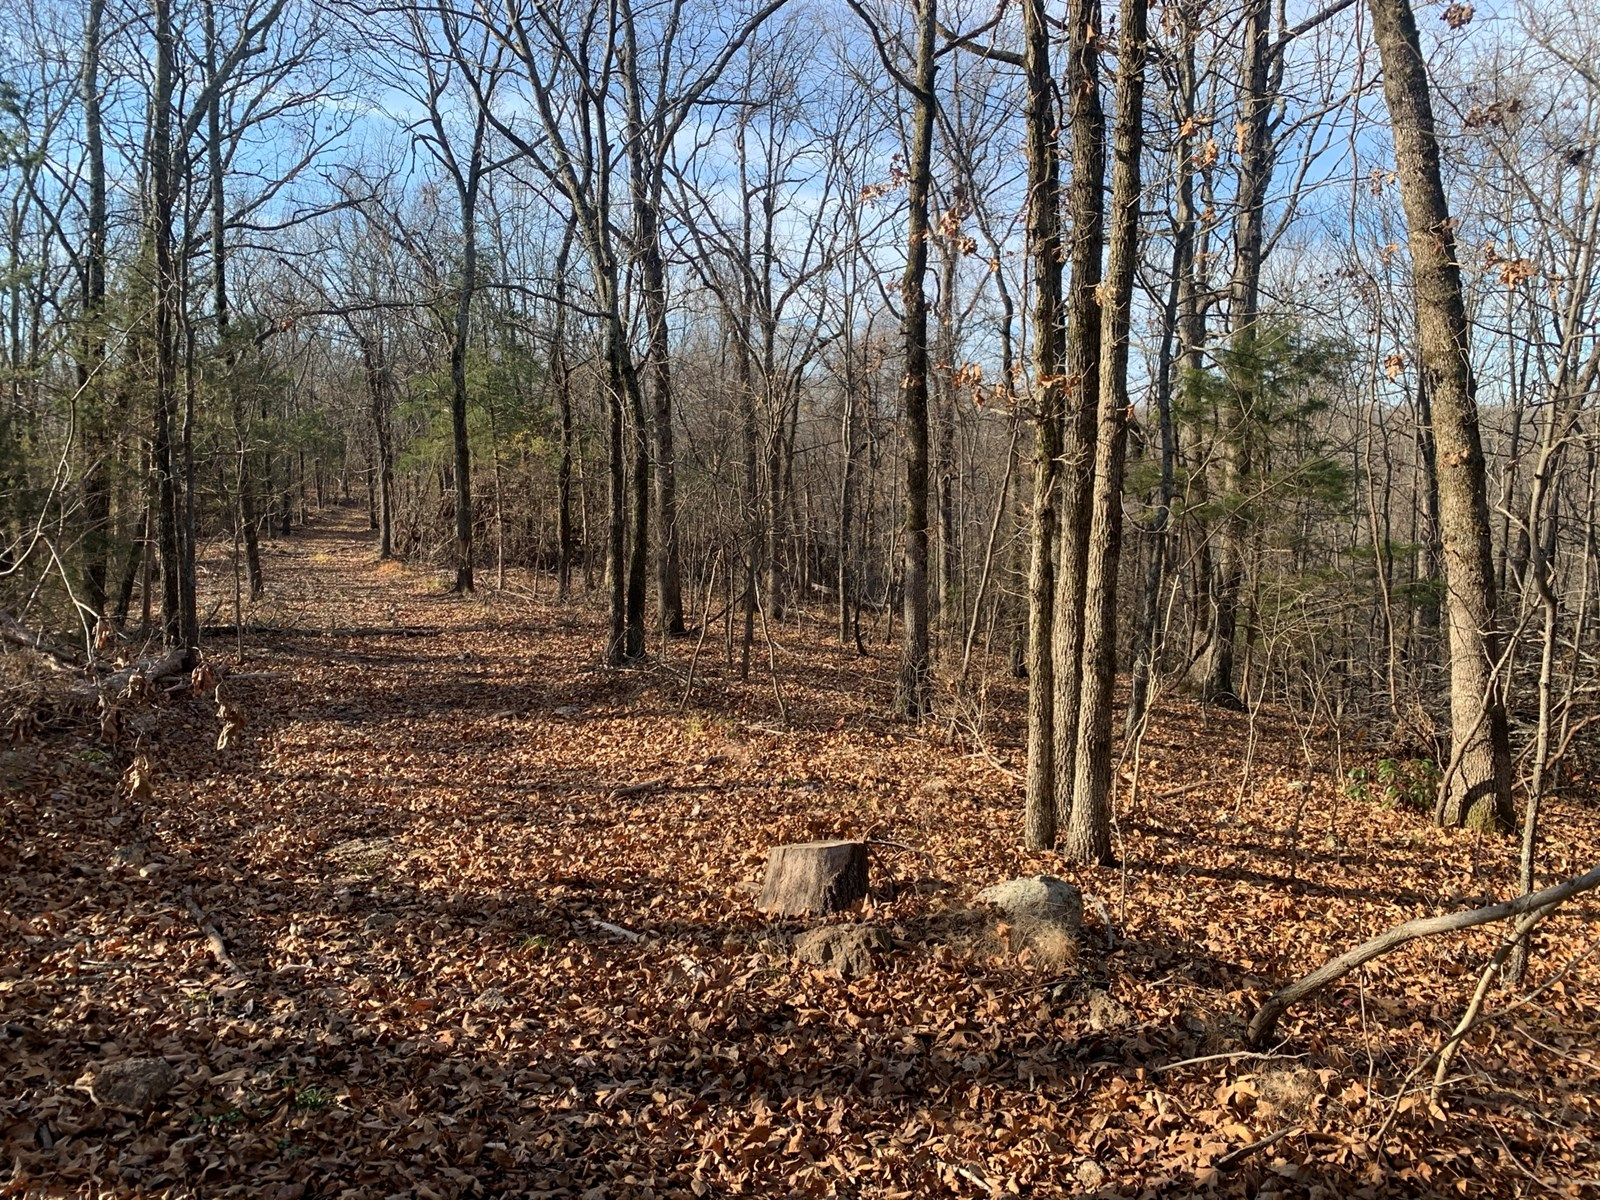 40 ACRE TRACT FOR SALE IN CUSHMAN, ARKANSAS